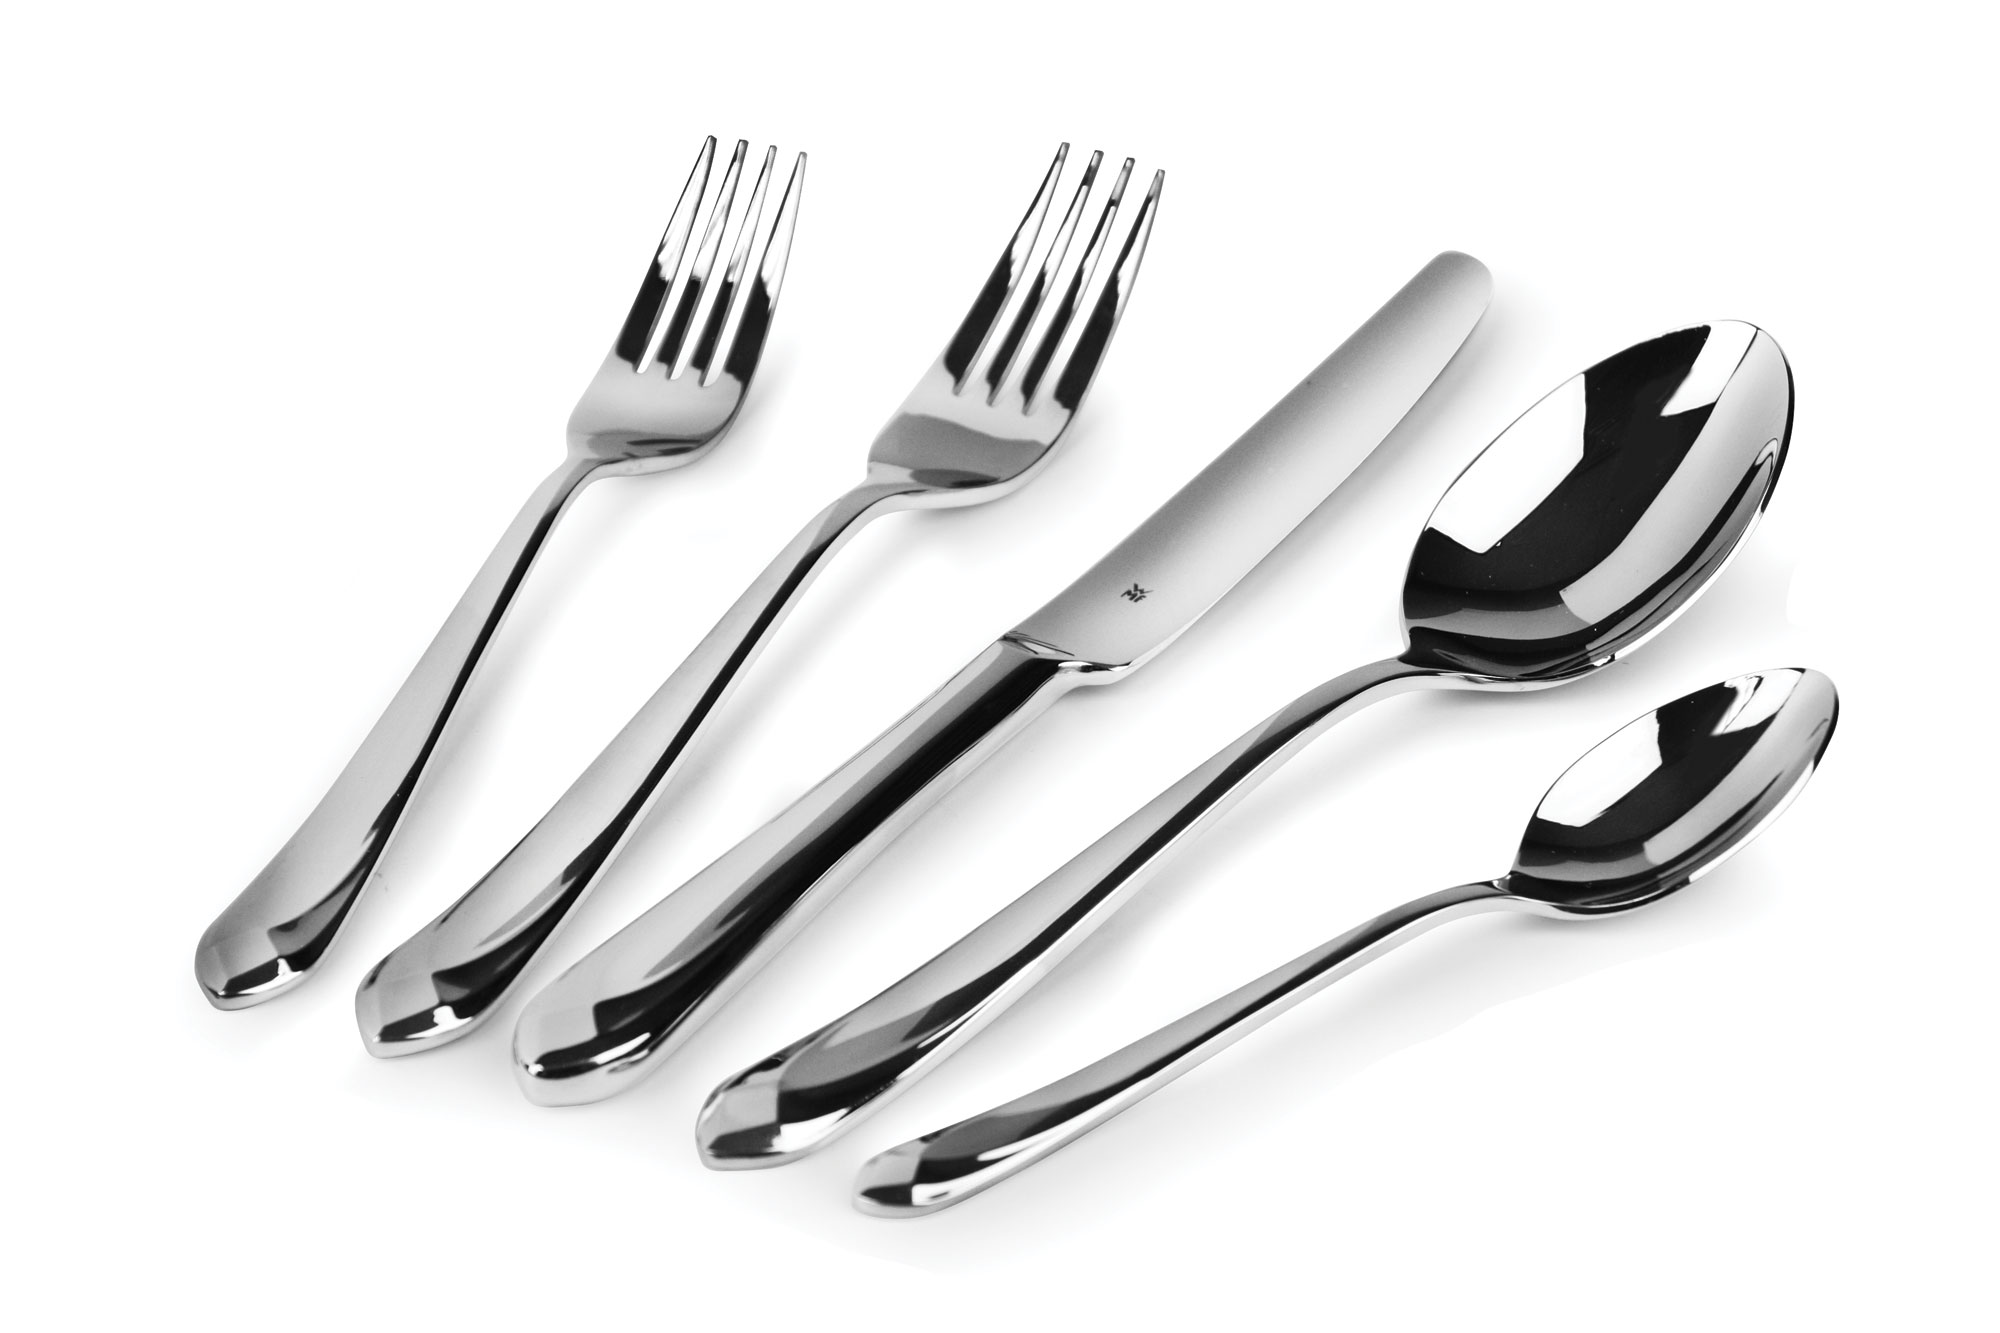 Wmf Juwel Stainless Steel Flatware Set 20 Piece Cutlery